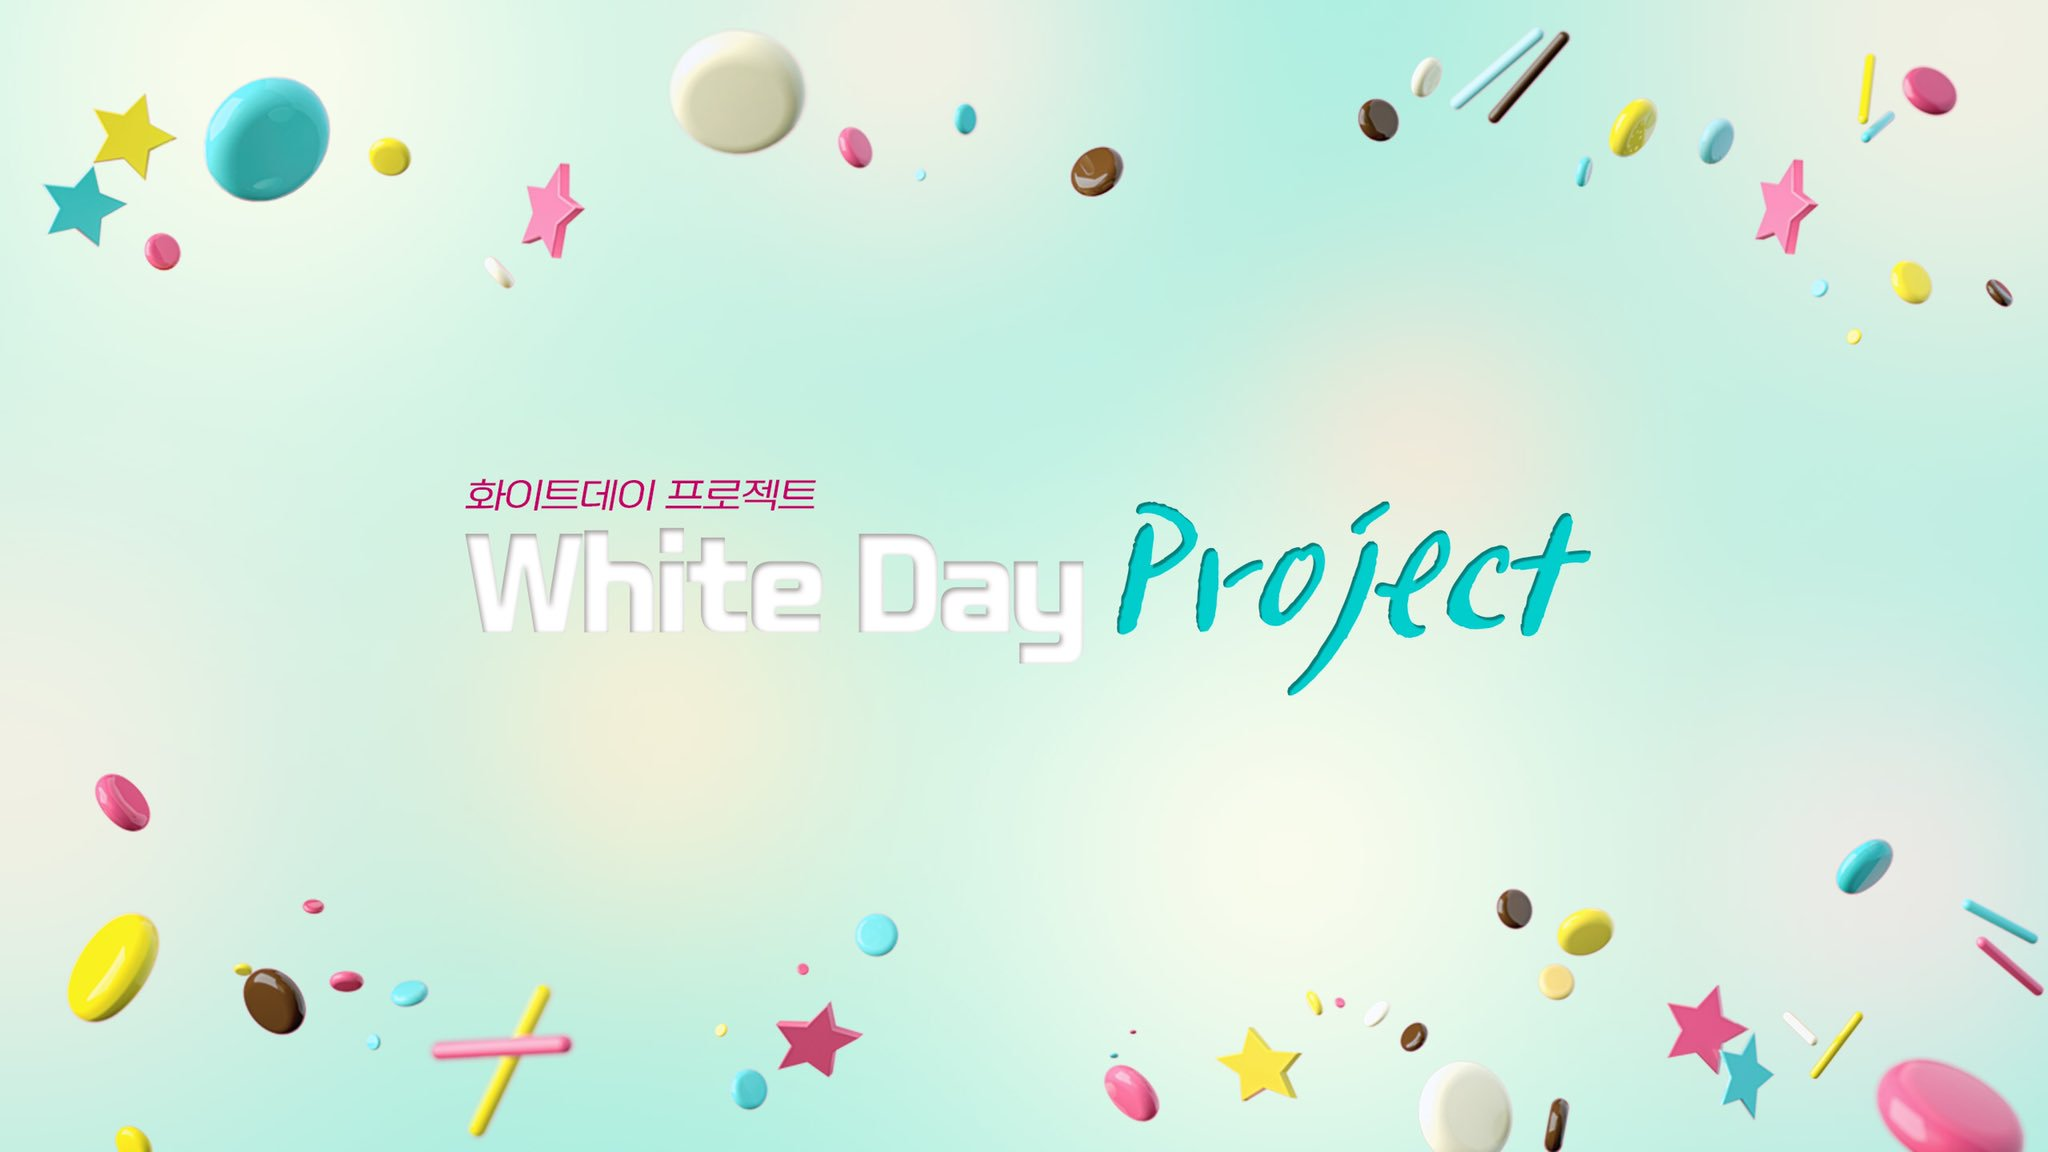 White Day Project